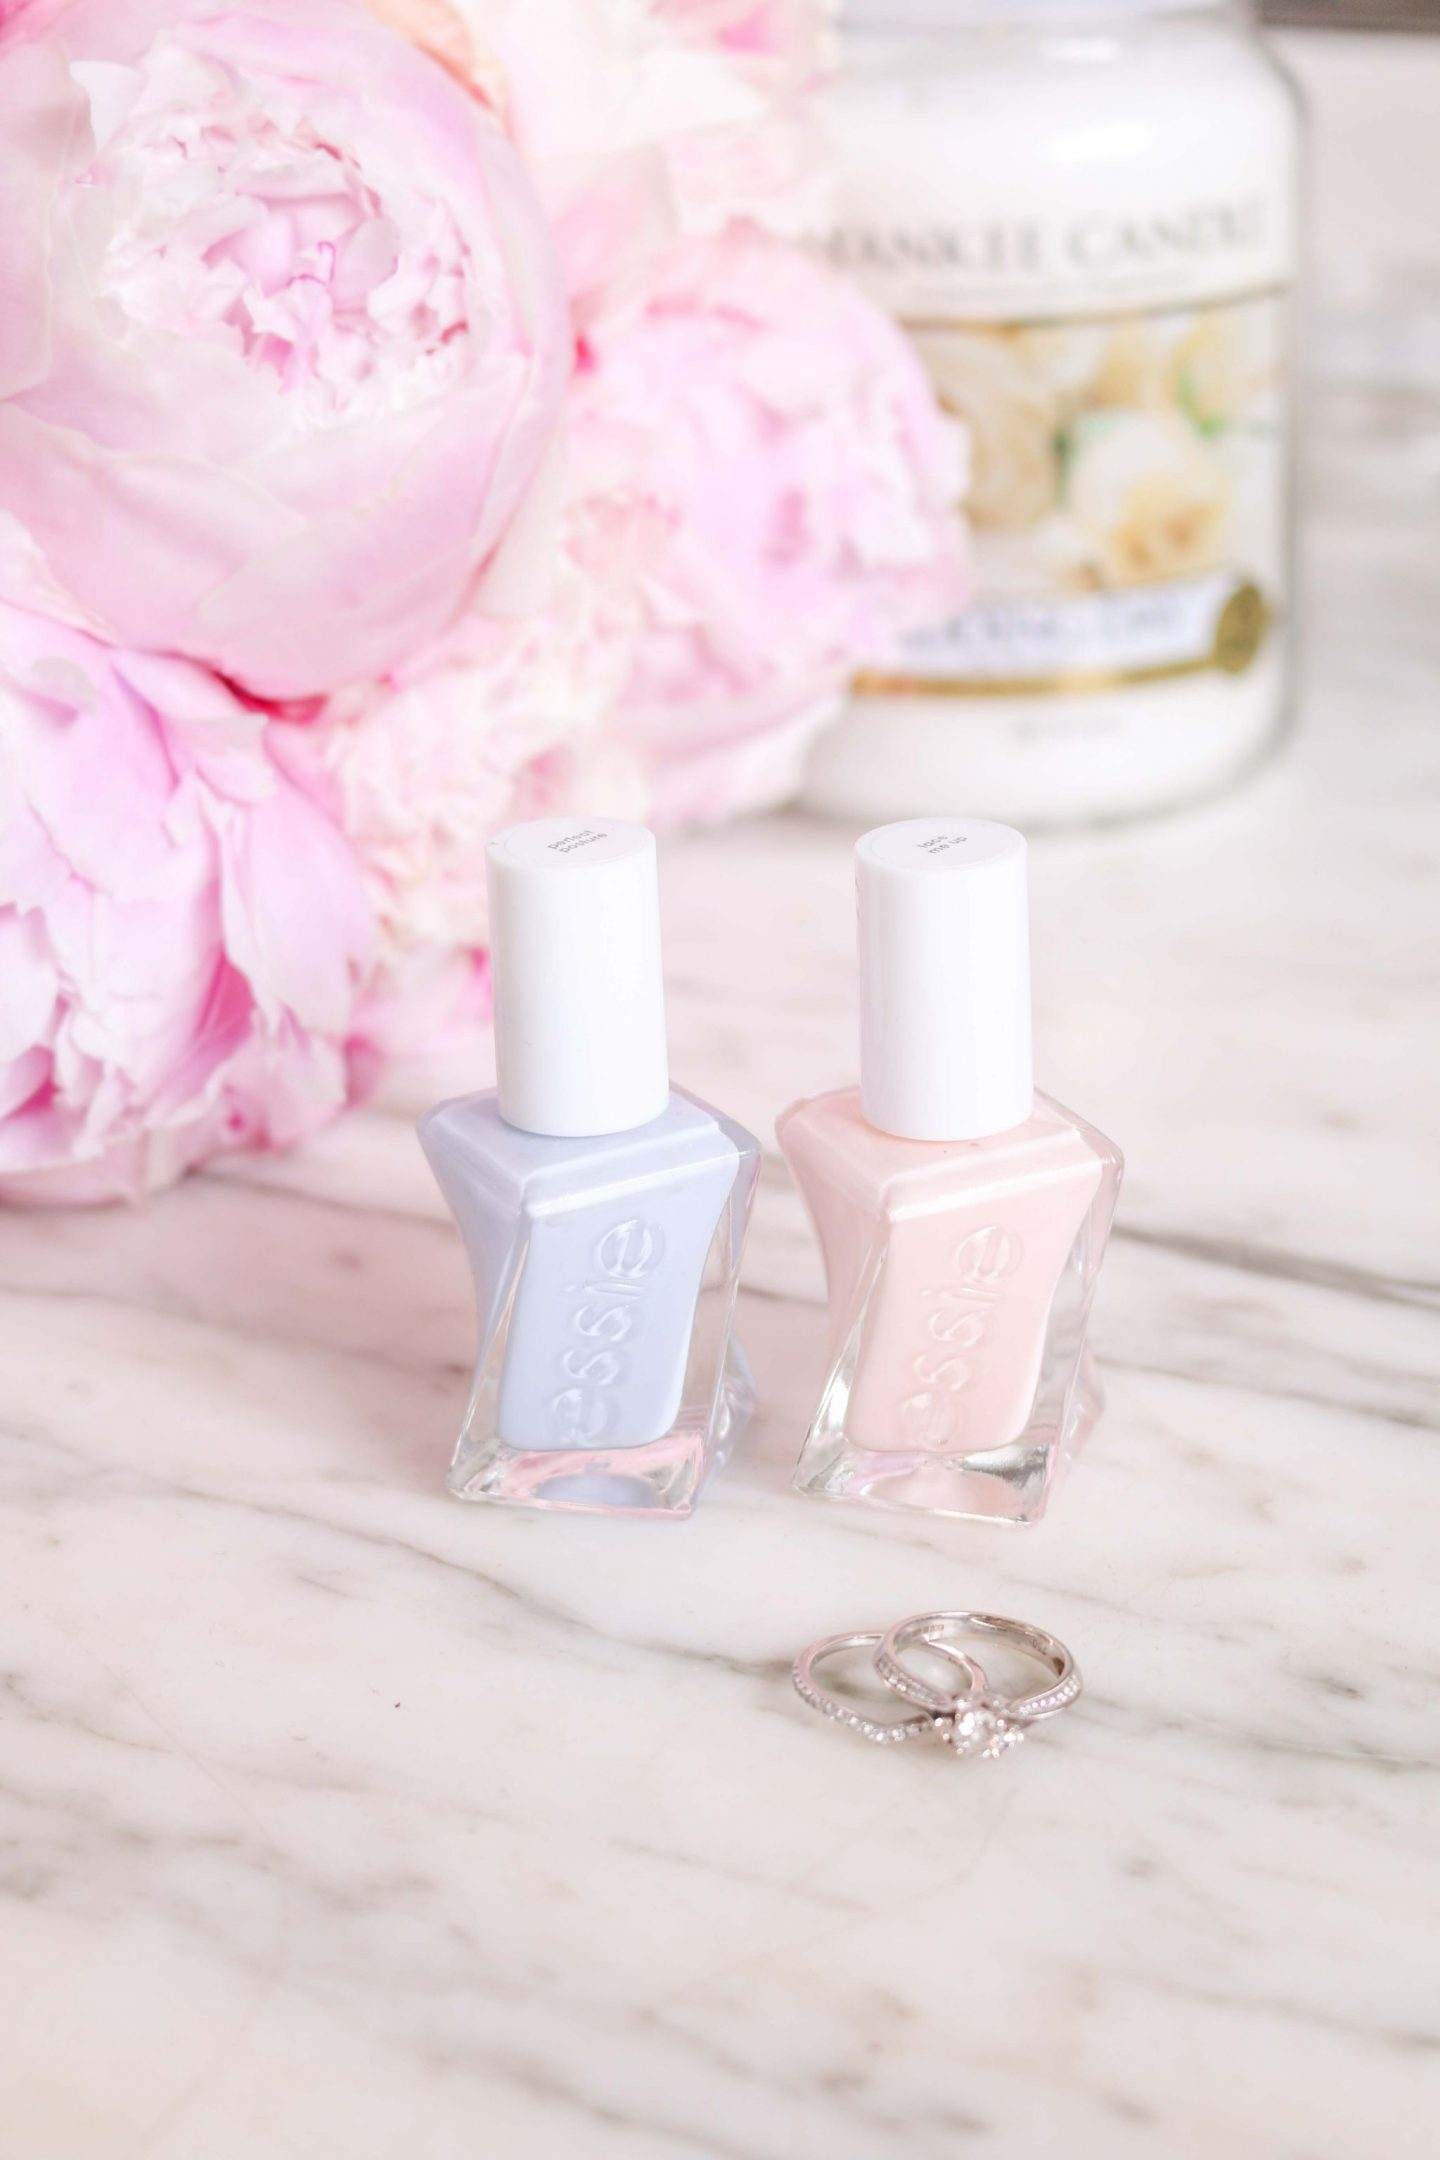 wedding nails, nails. wedding manicure, essie, essie gel couture, essie lace me up, essie pale pink, bride nails, bride to be, essie nude nails, dizzybrunette3 nails,